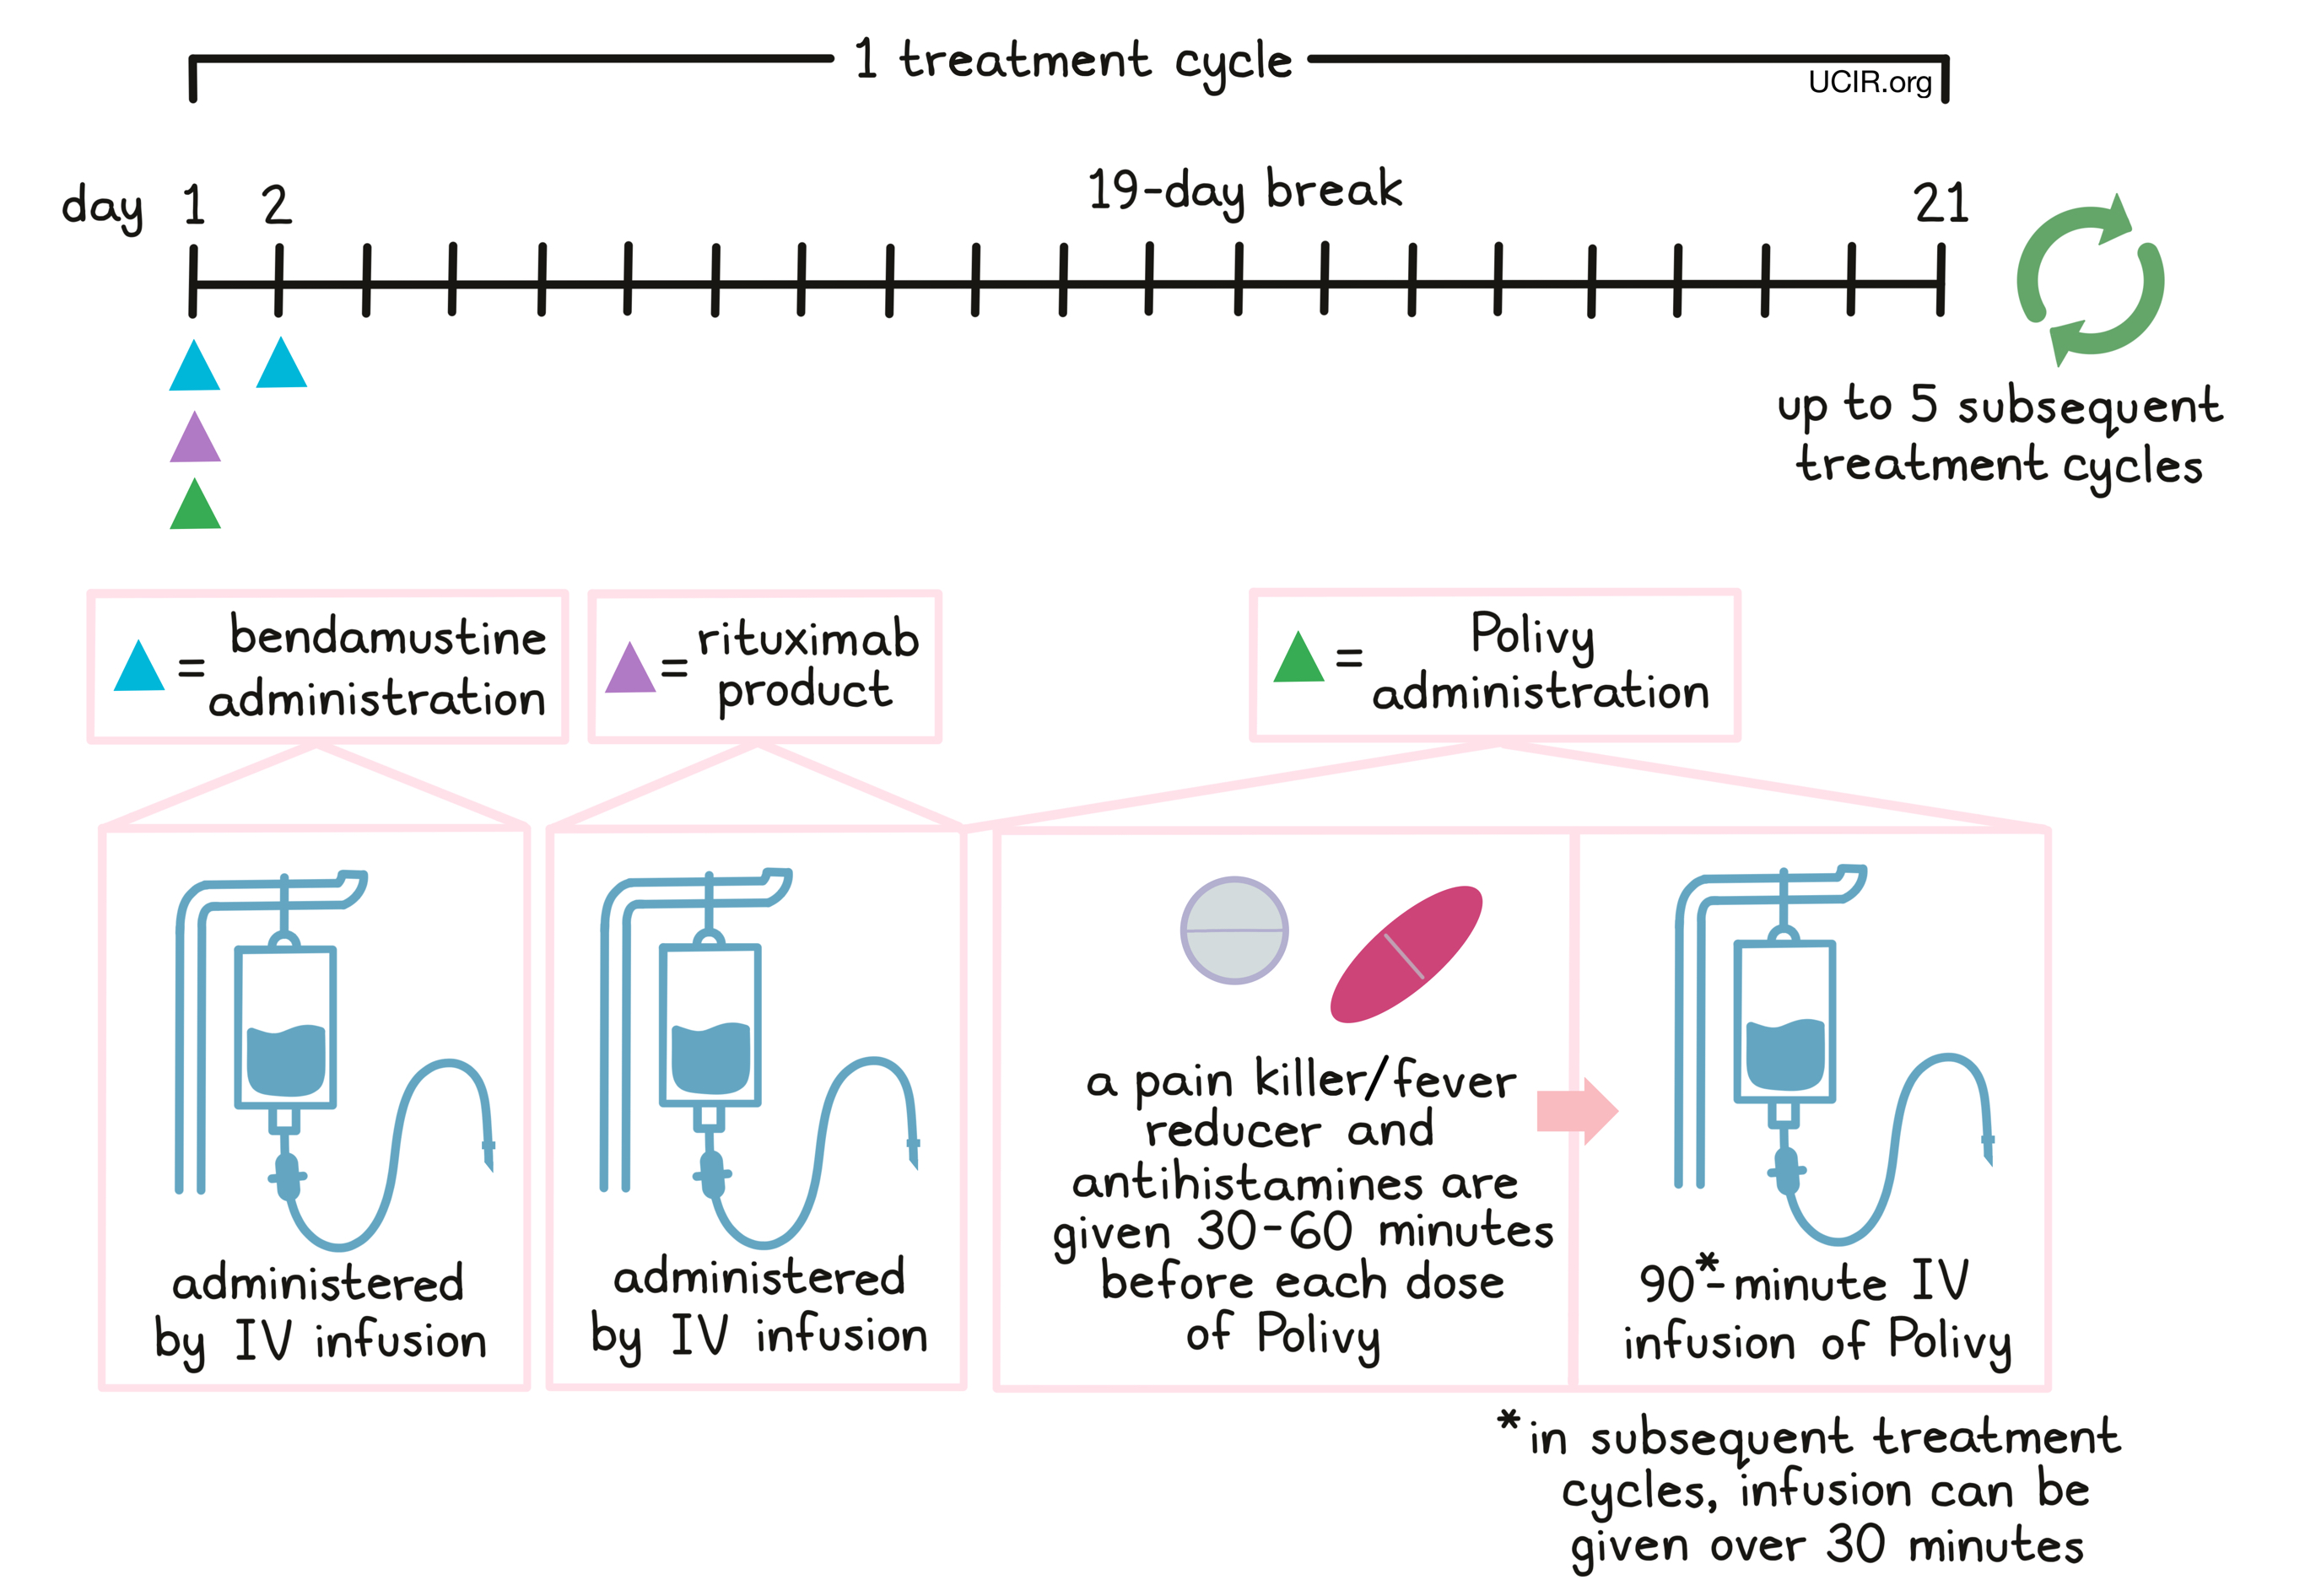 Illustration showing how Polivy is administered